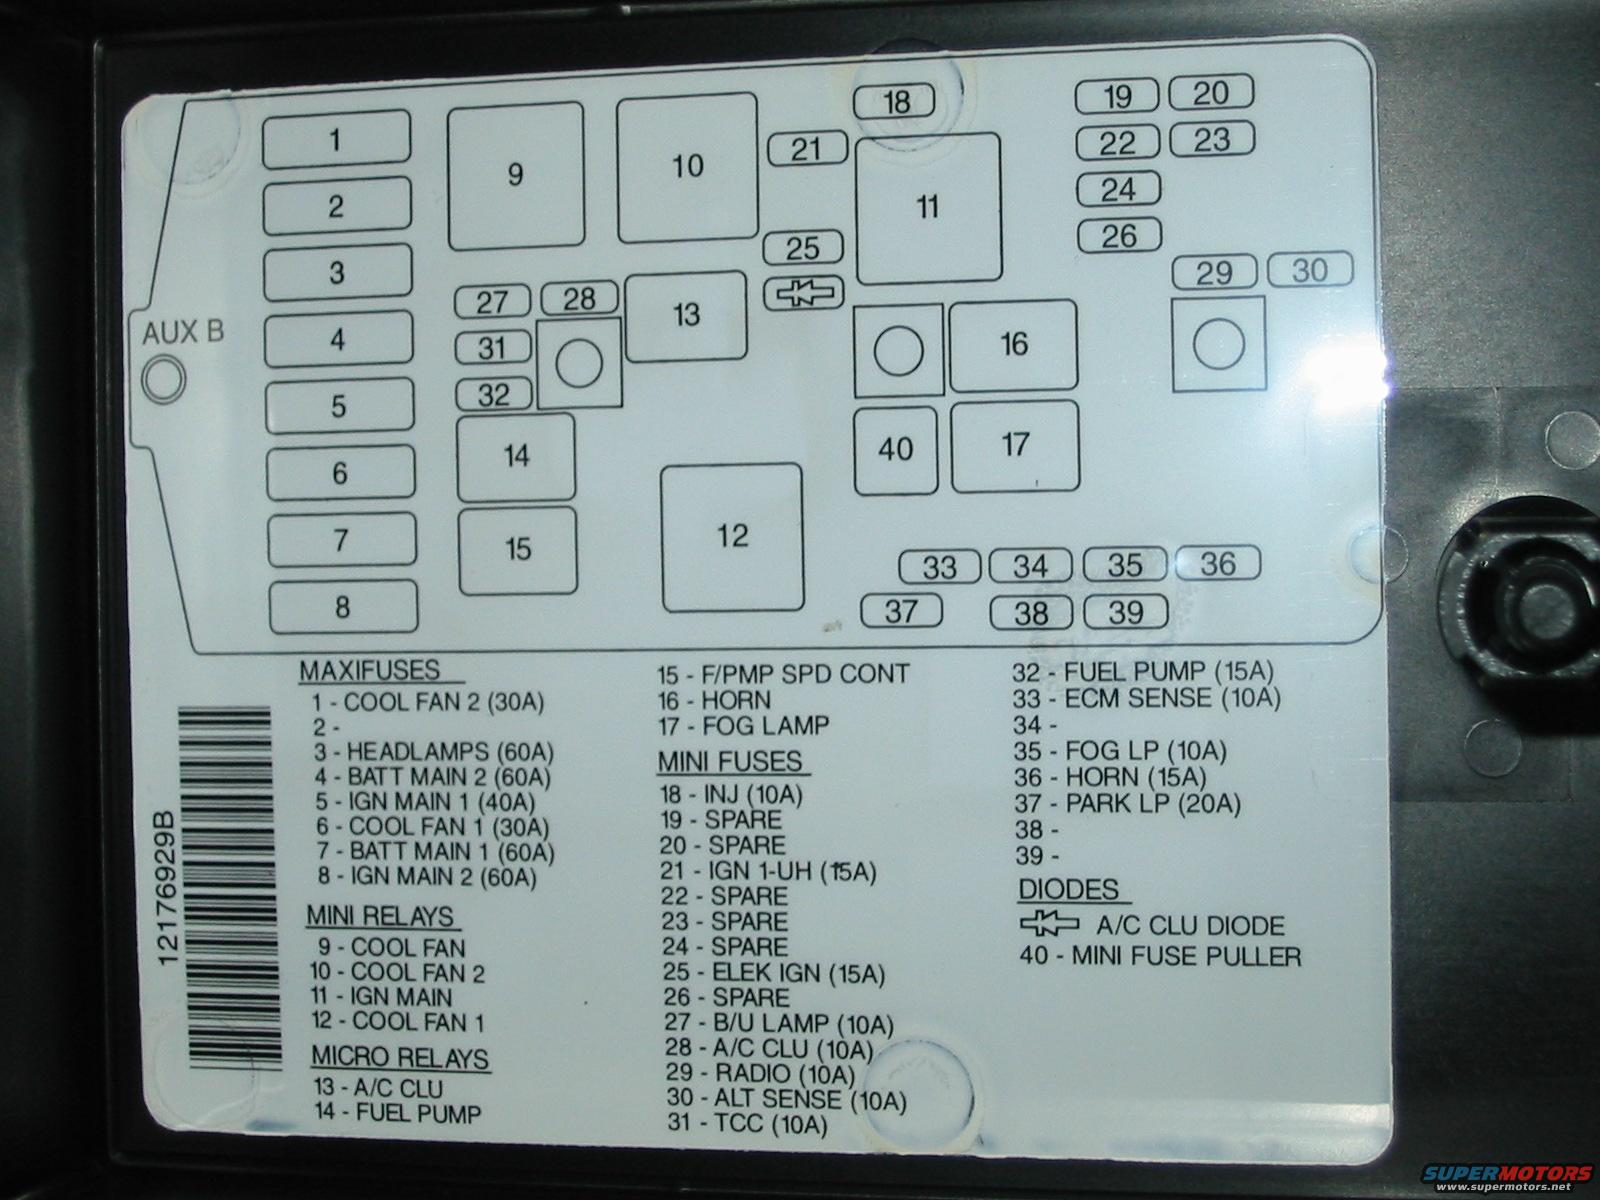 2000 Grand Prix Blower Motor Wiring Diagram Library Pontiac Am Gt Fuse Box 98 Resistorblower And Relay 2005 Rav4